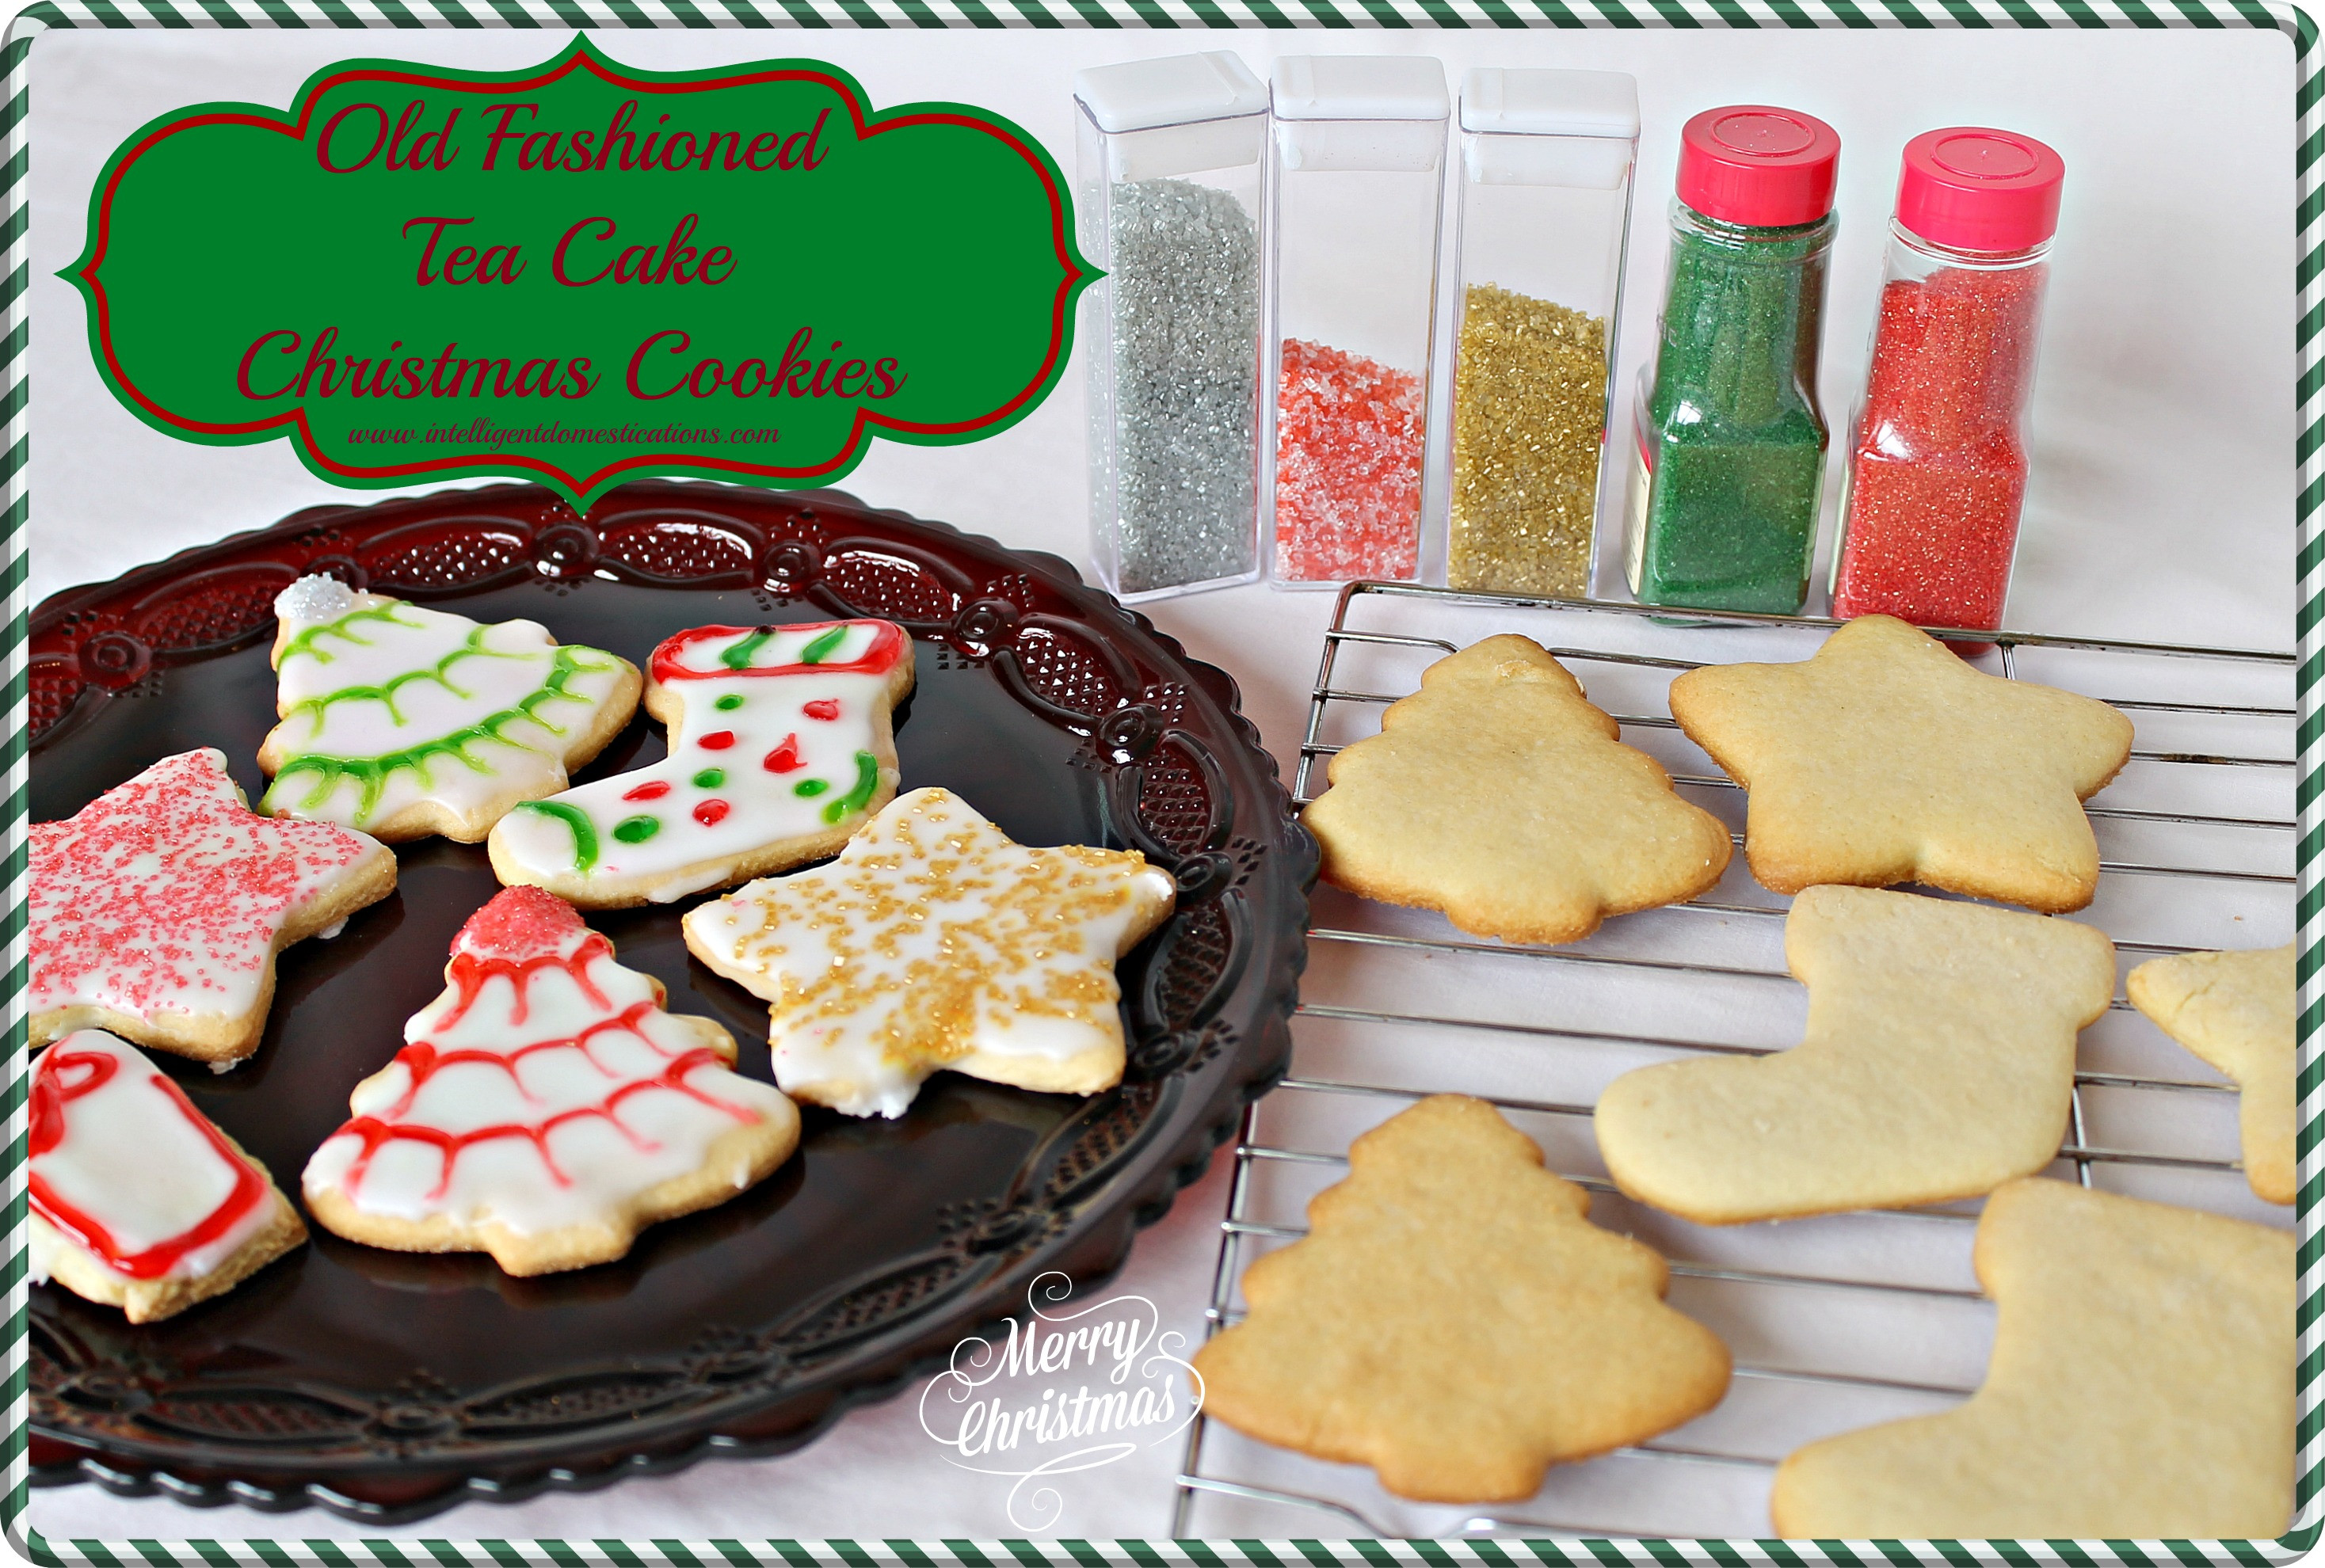 Old Fashioned Christmas Cookies Recipe  Old Fashioned Tea Cake Christmas Cookies